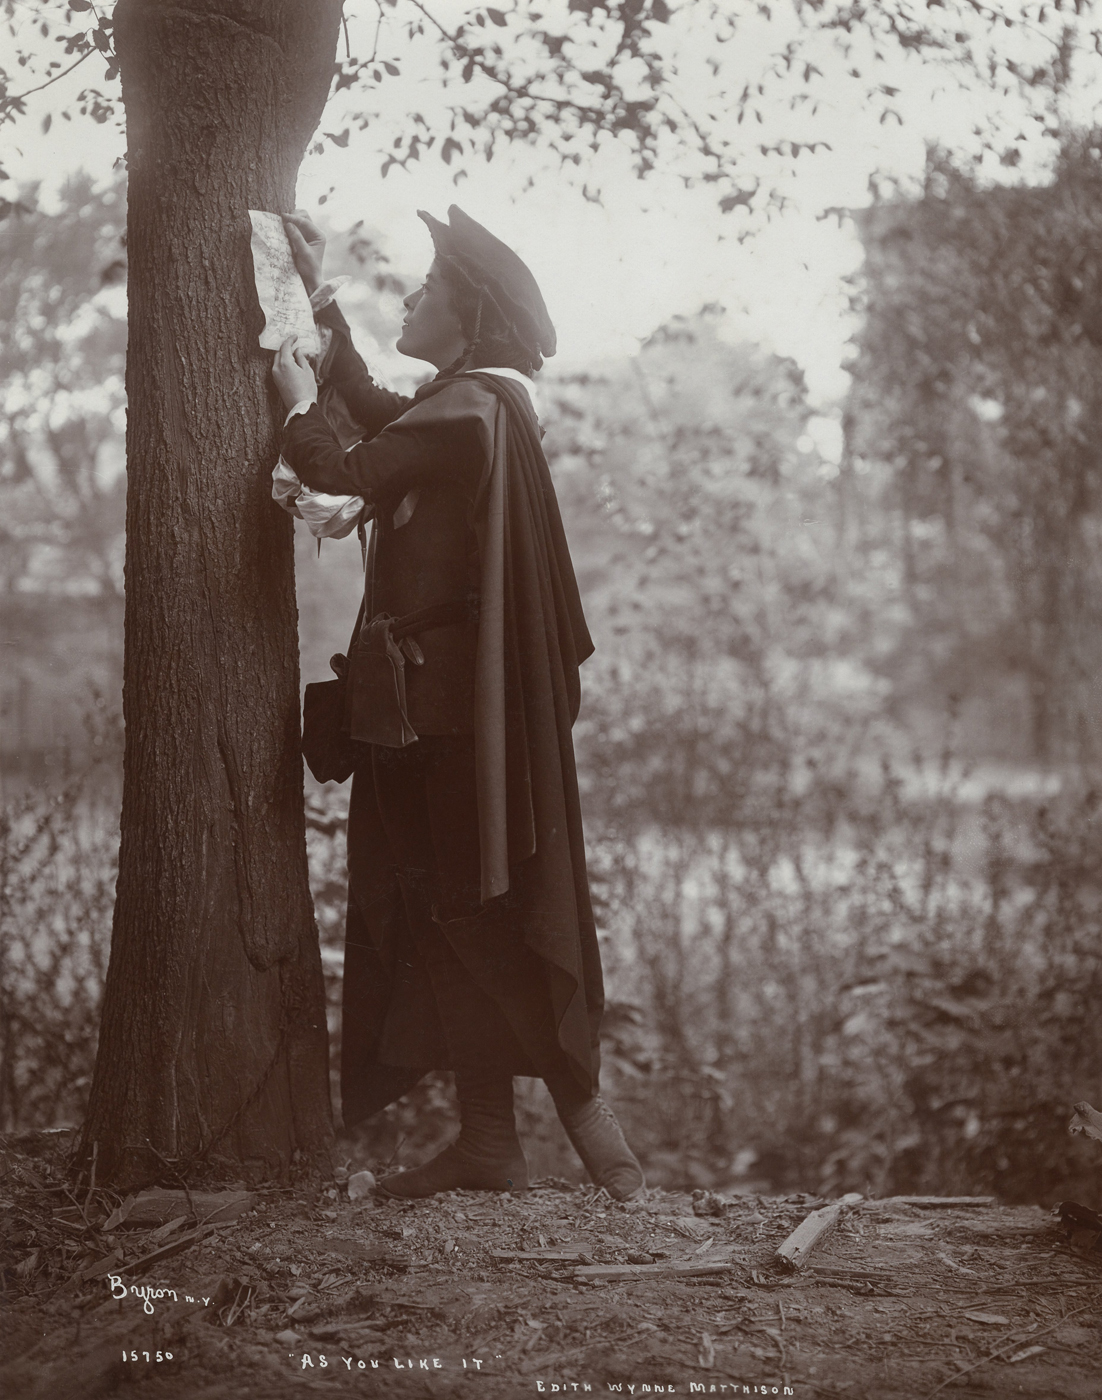 Black and white photo of a 1903 production of As You Like It. Rosalind, played by Edith Wynne Matheson, reads a poem pinned to a tree.